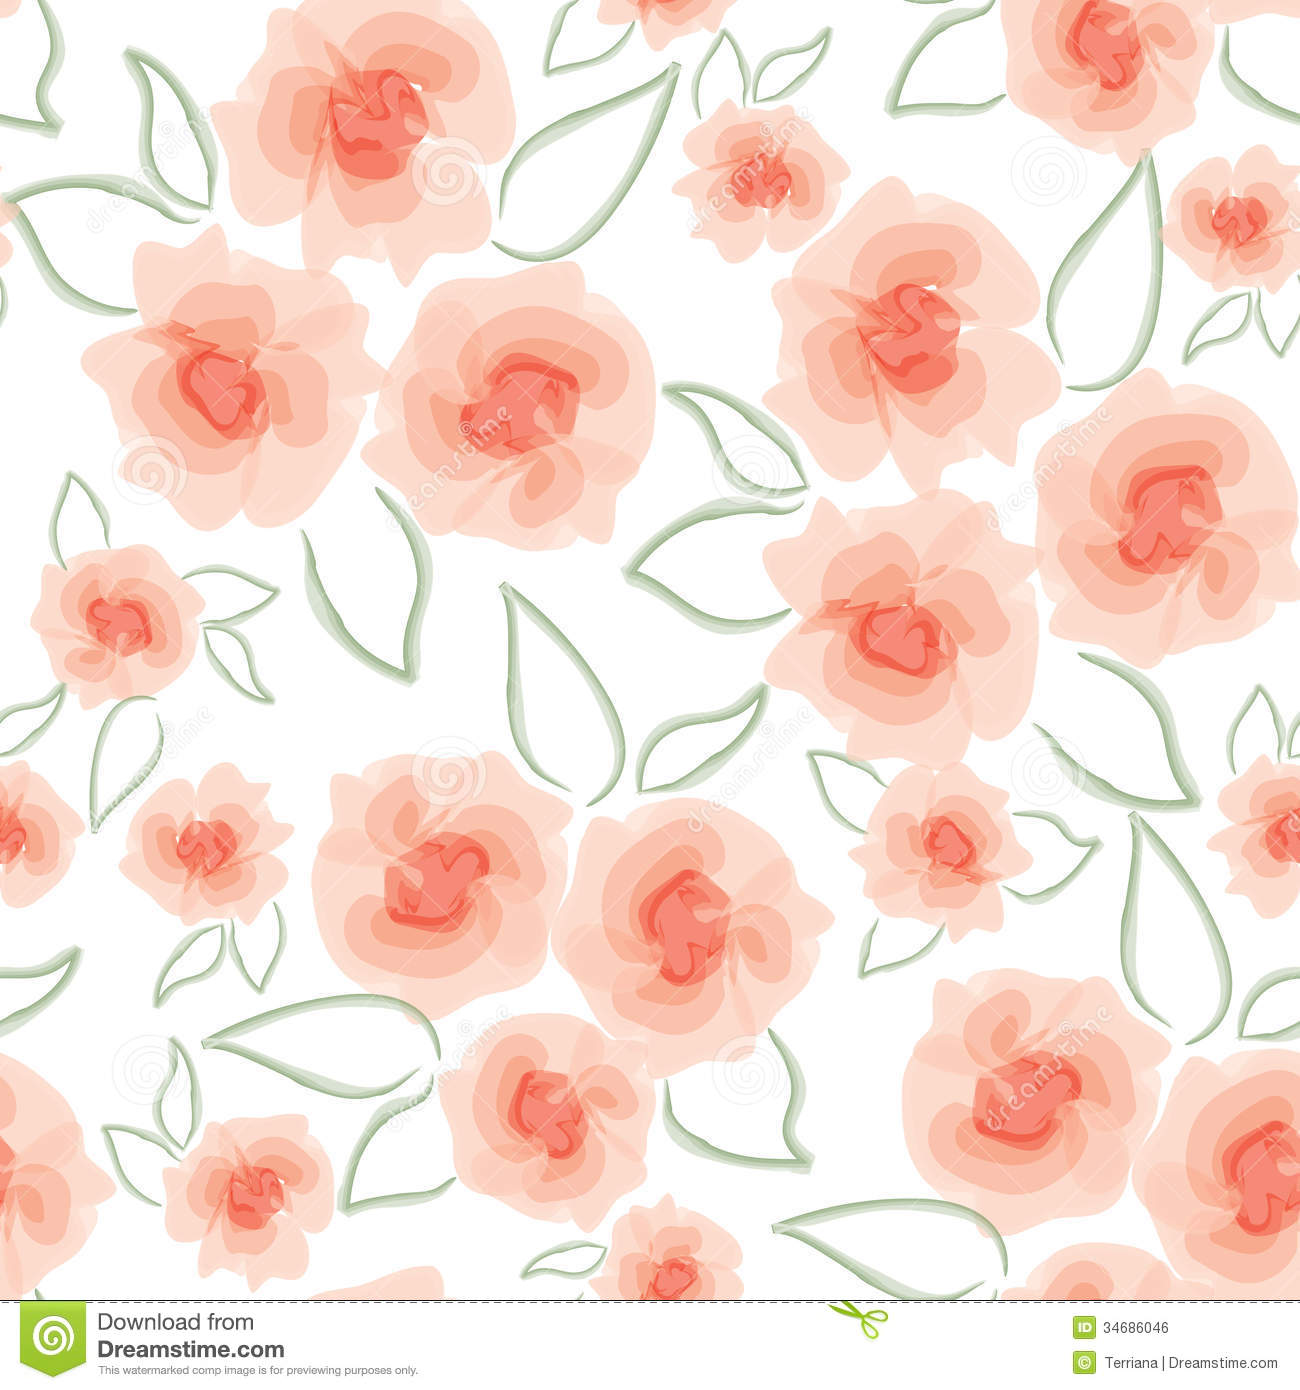 Pink floral seamless vector background floral hrysanthemum seamless - Abstract Swirl Flower Texture Royalty Free Stock Image